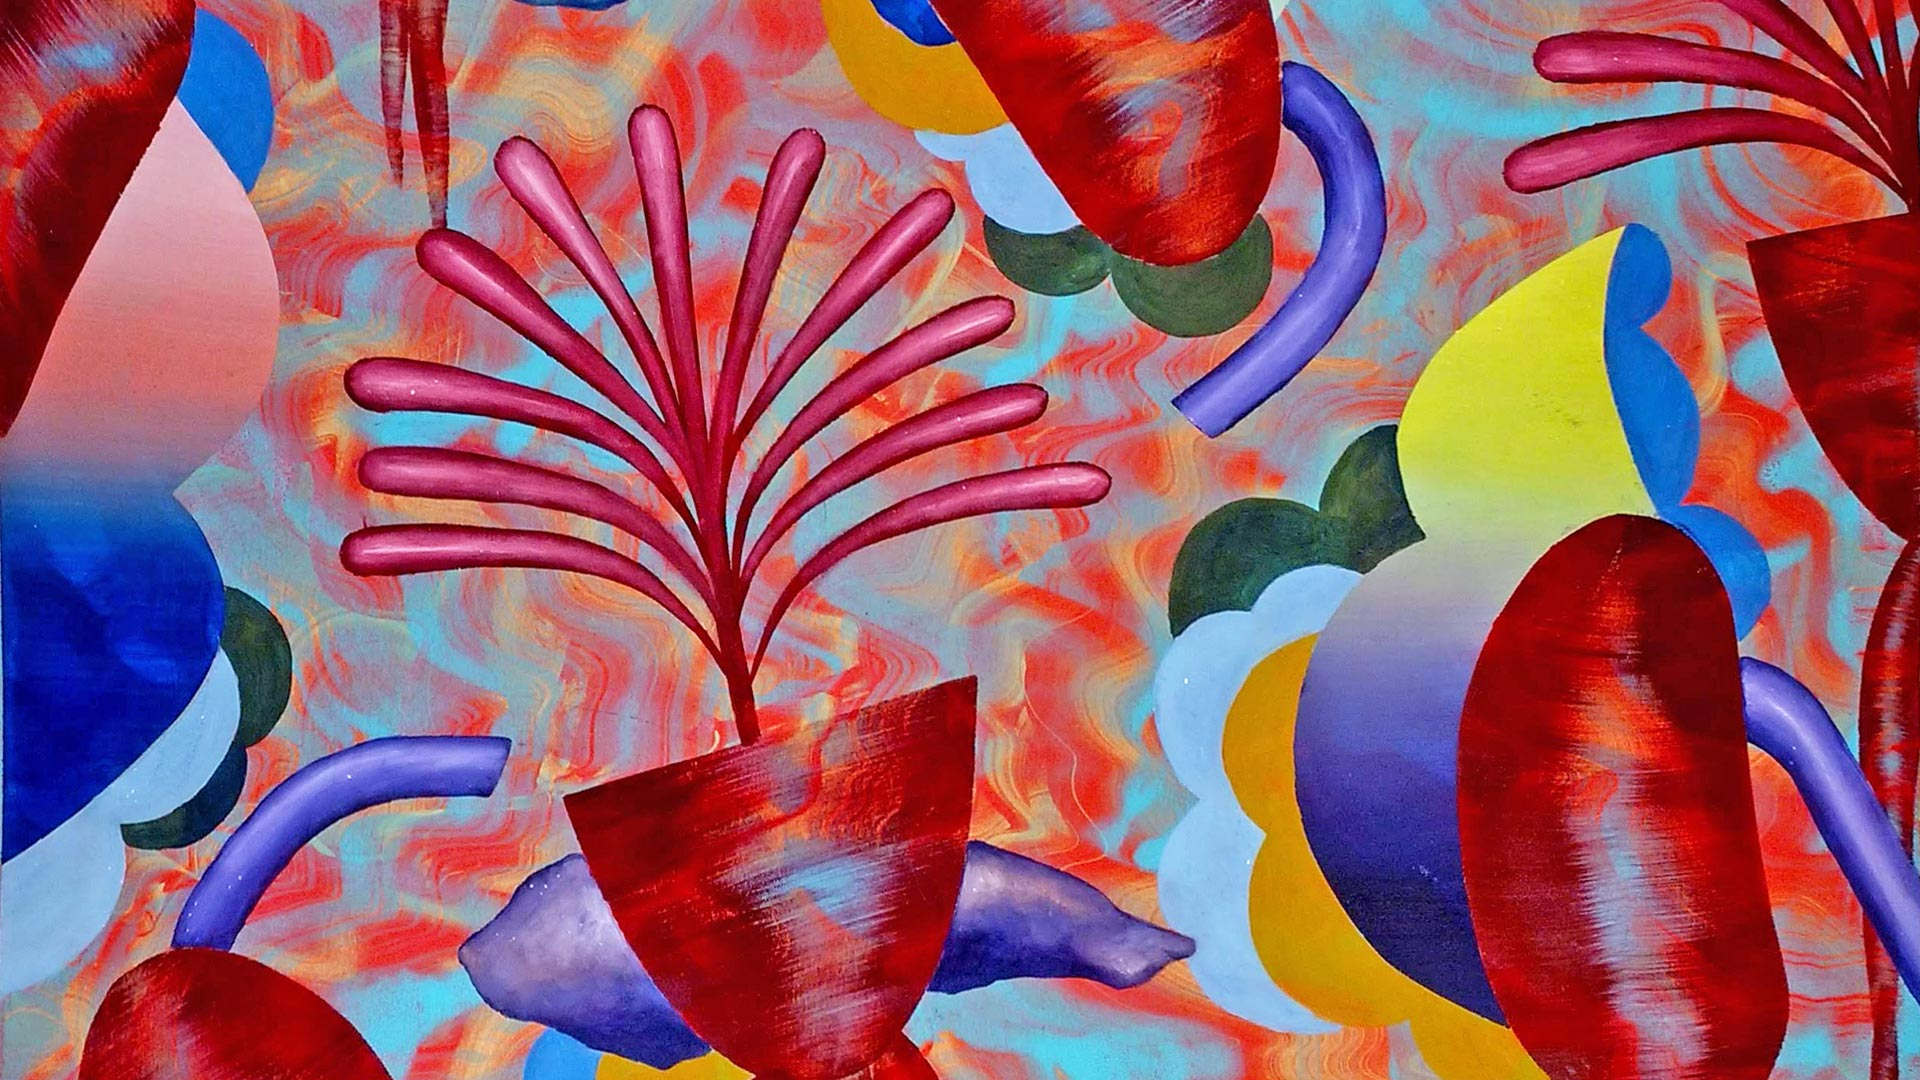 Flora 14 (detail) by Monty Little